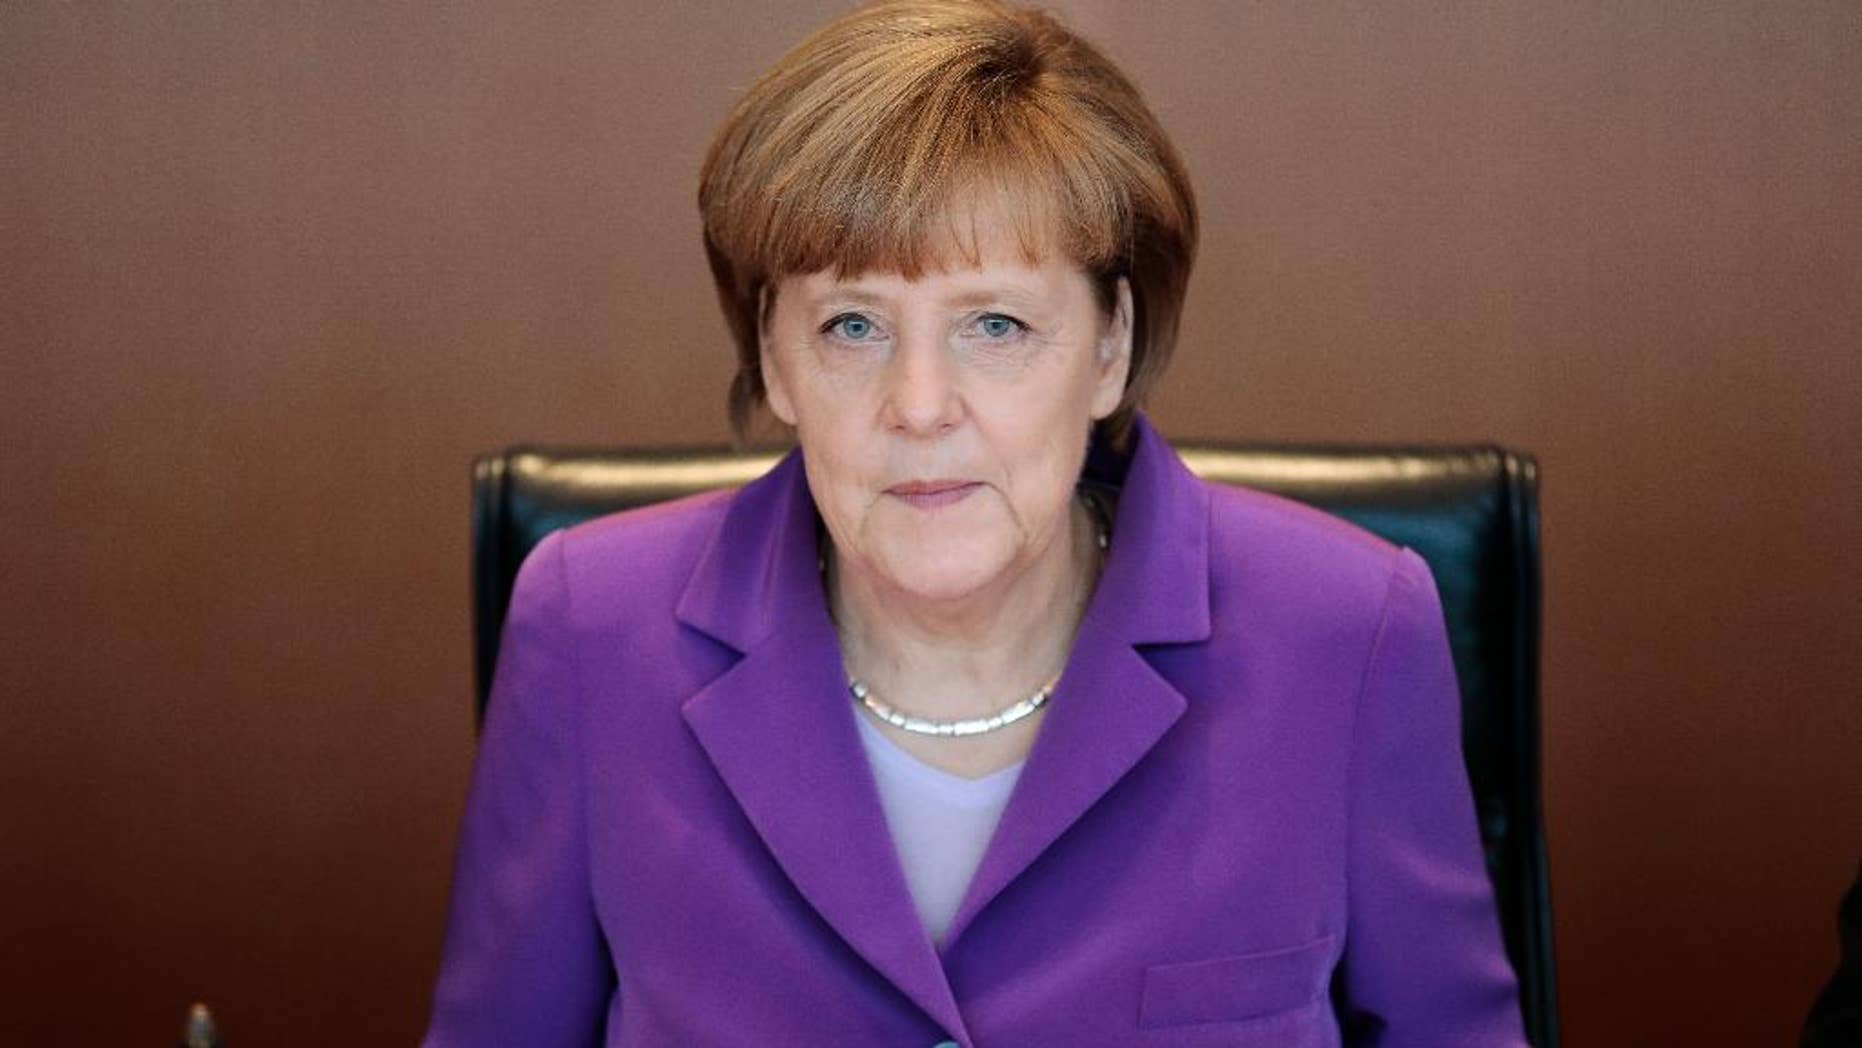 German Chancellor Angela Merkel attends the weekly cabinet meeting at the chancellery in Berlin, Wednesday, May 28, 2014.  (AP Photo/Markus Schreiber)